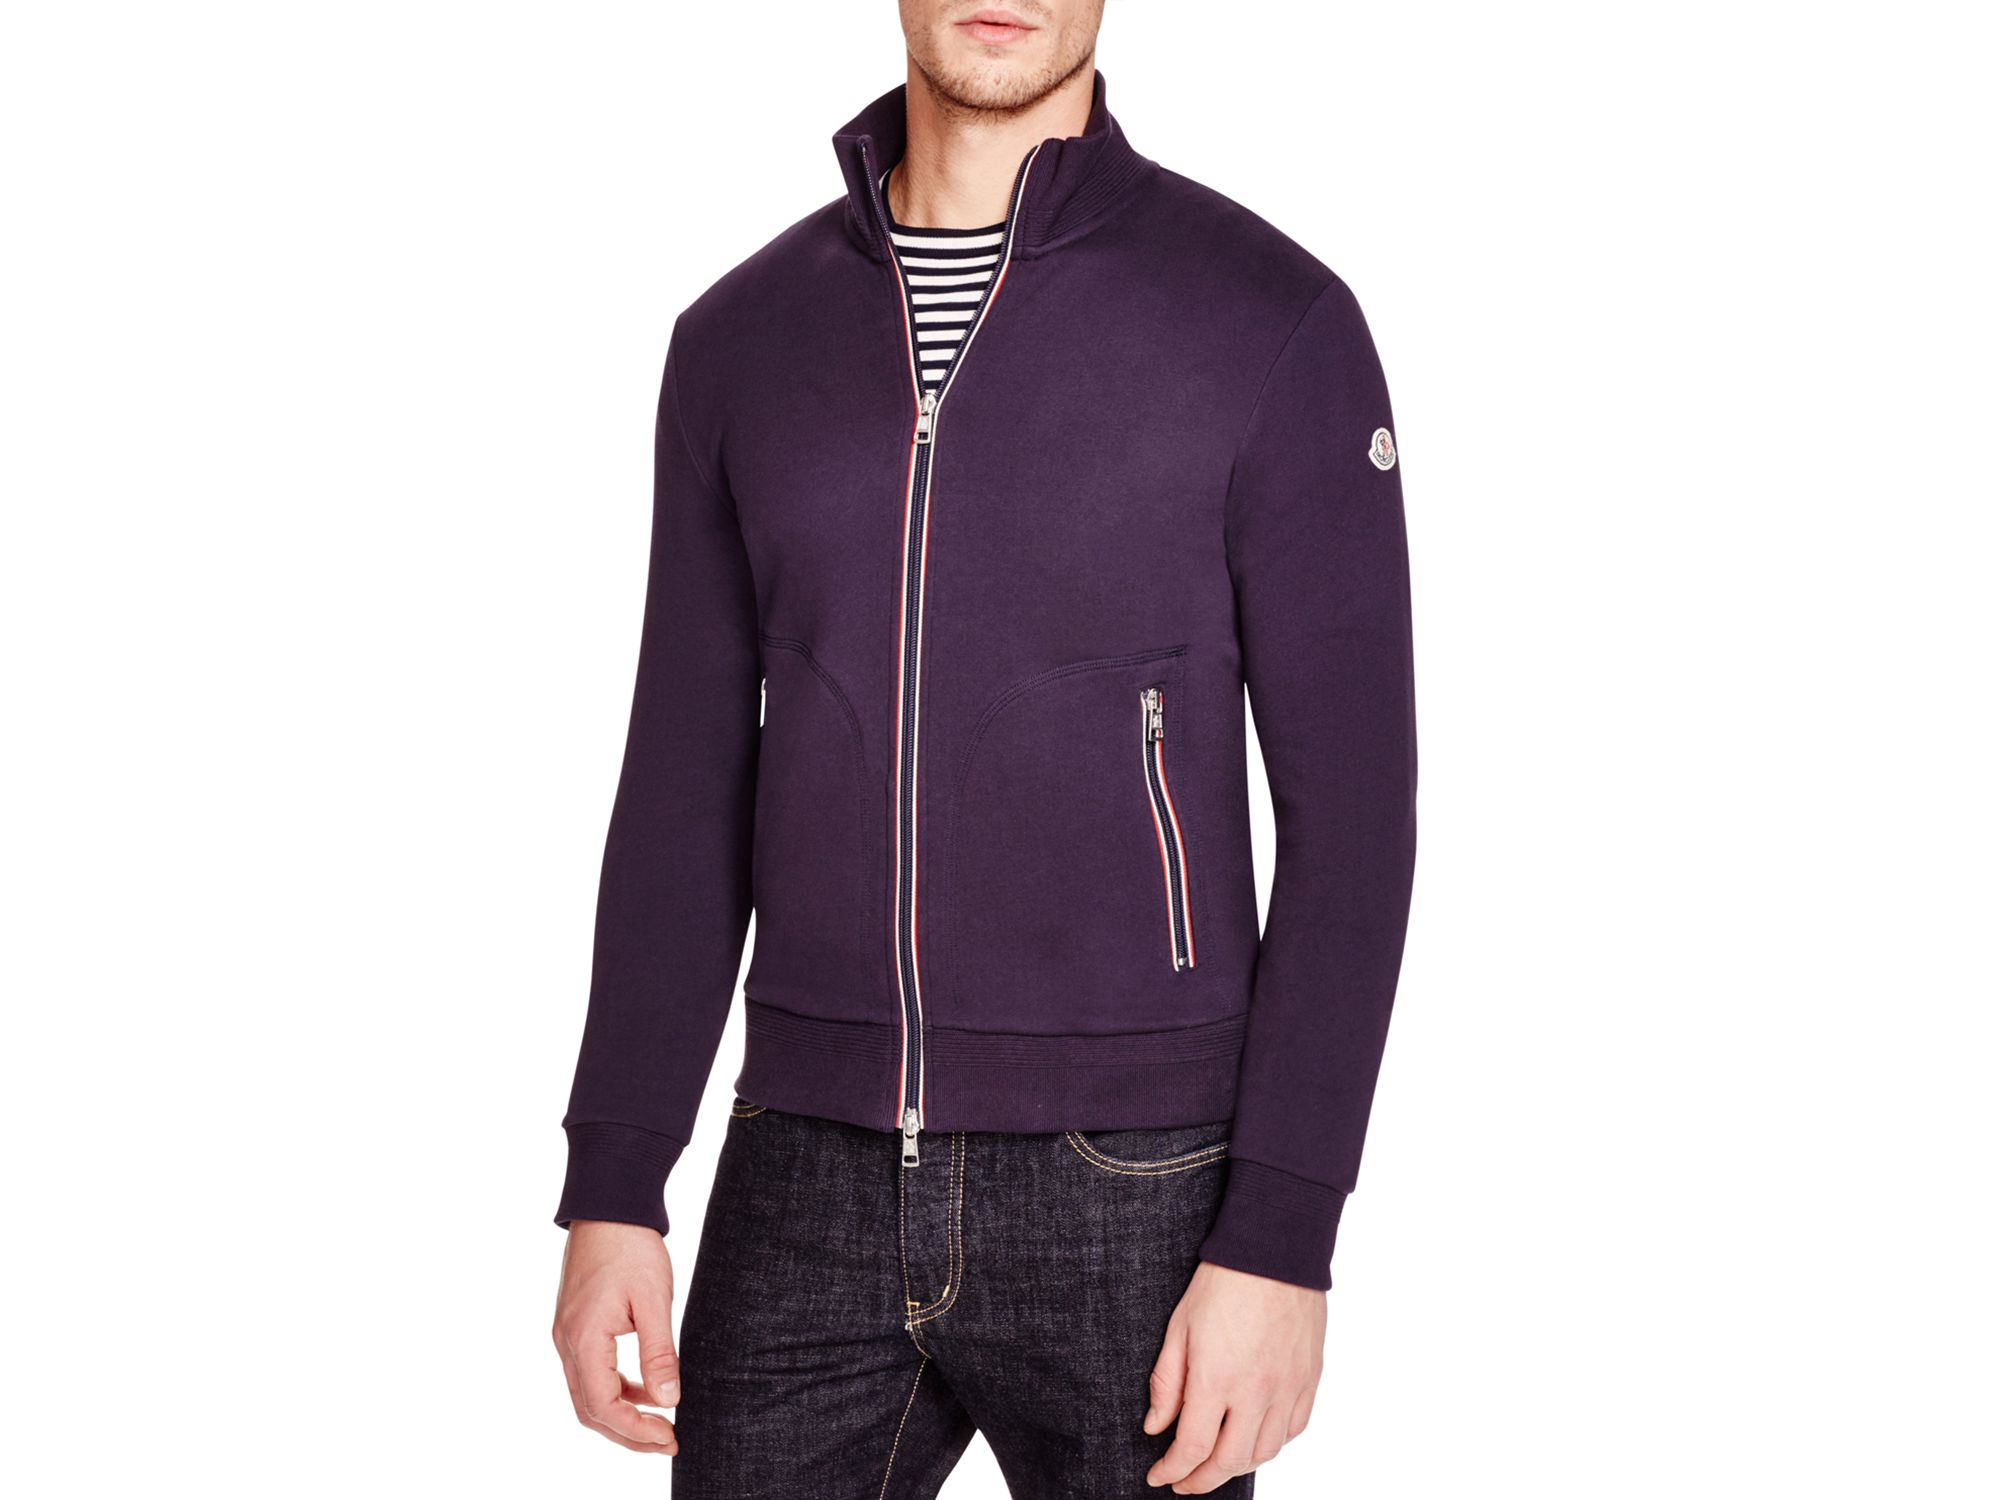 moncler zip up sweater